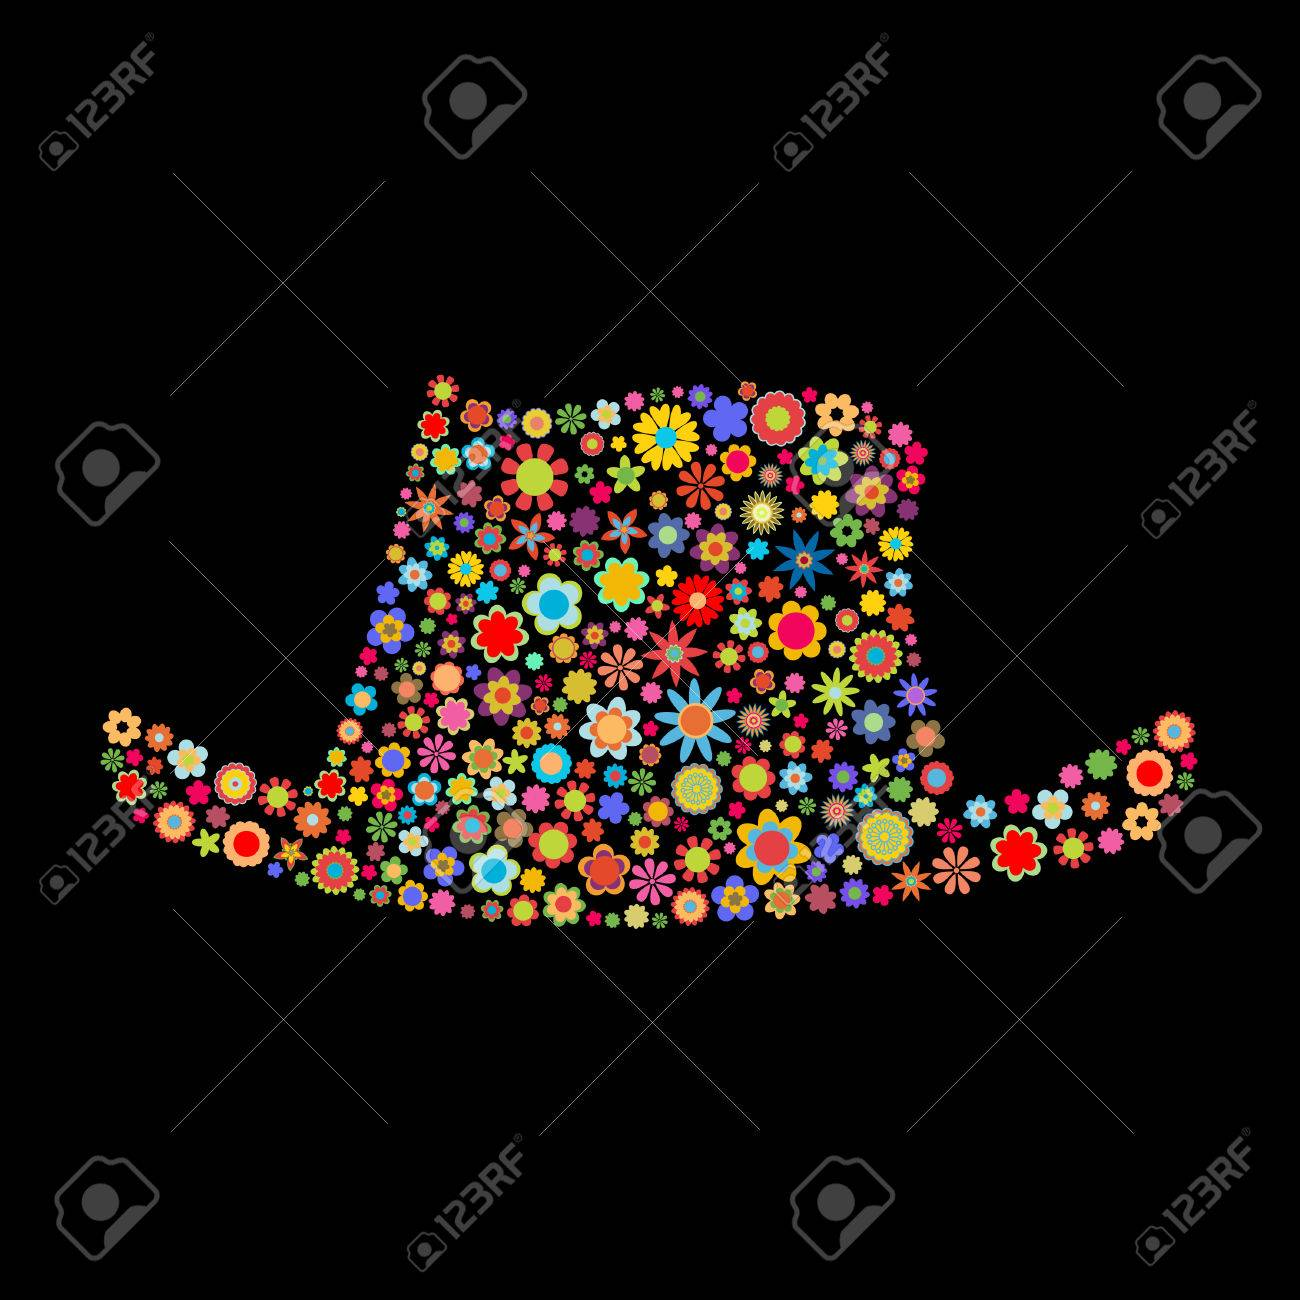 Vector illustration of  hat shape  made up a lot of  multicolored small flowers on the black background Stock Vector - 4002786